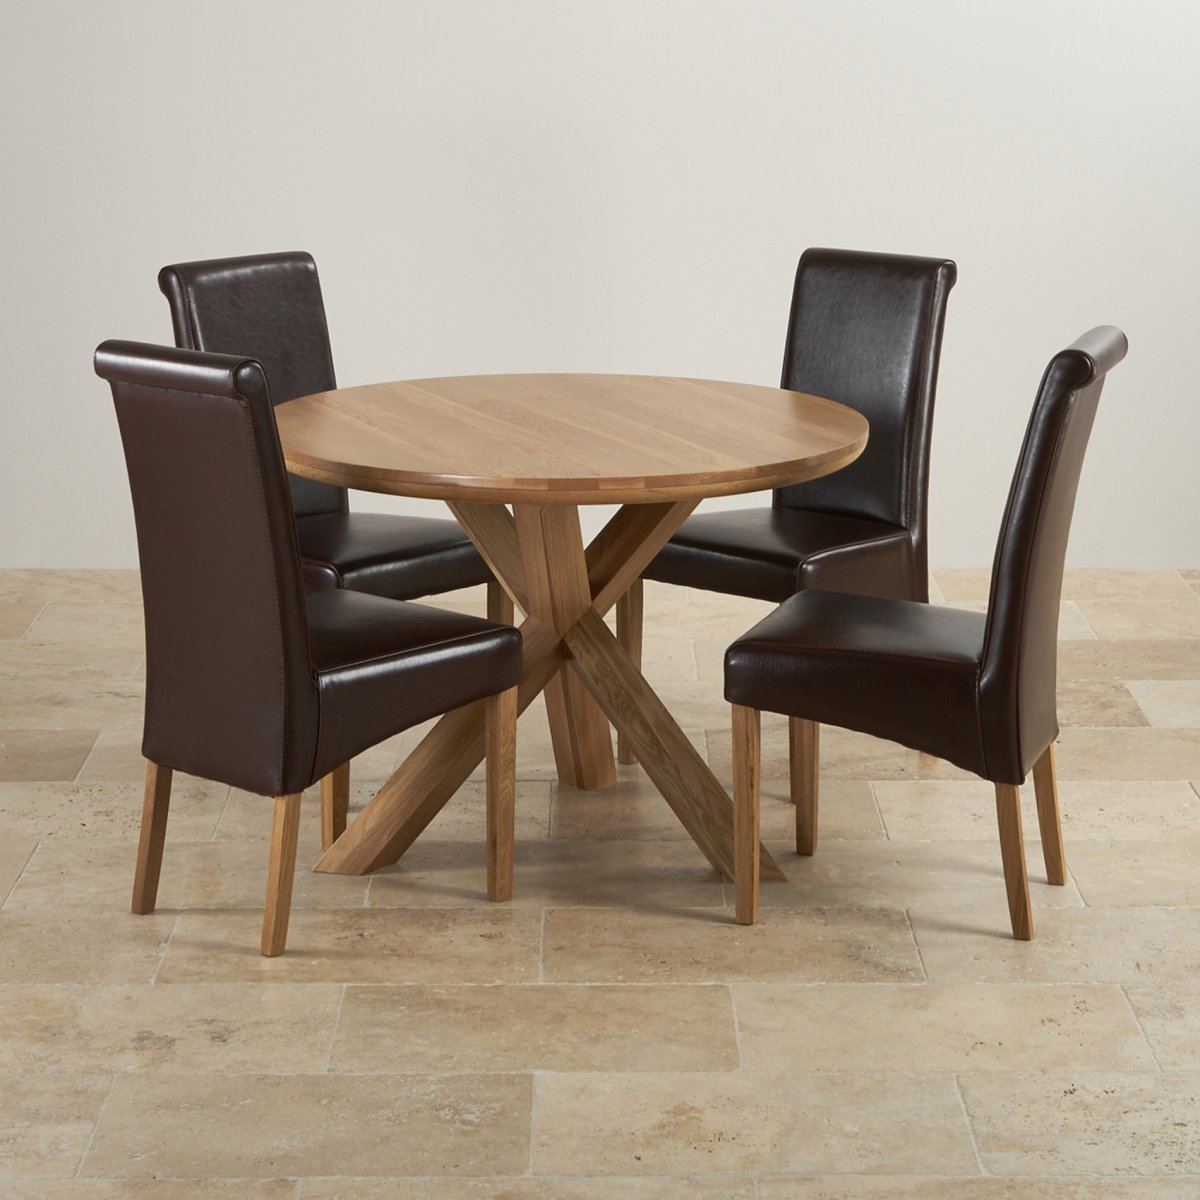 Dining Set Round Table: Natural Real Oak Dining Set: Round Table + 4 Brown Leather